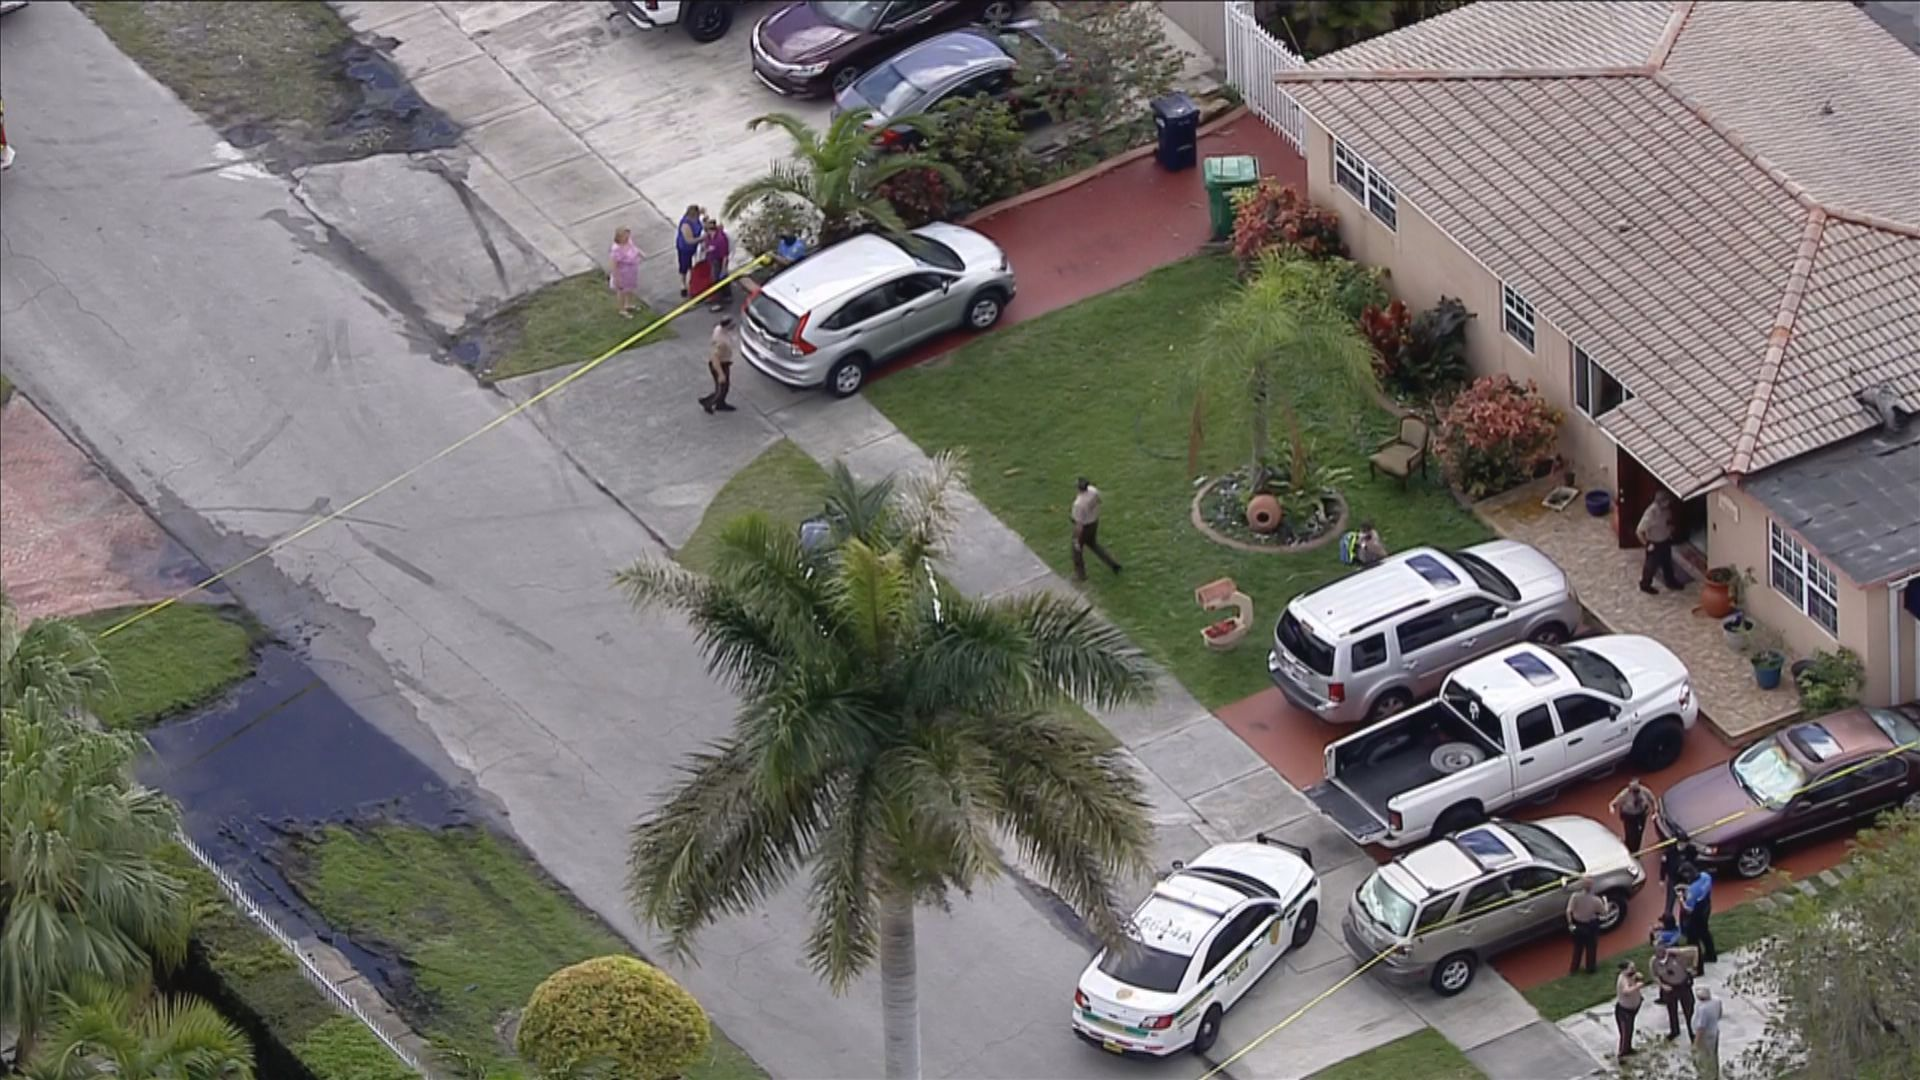 17-year-old boy injured in accidental shooting in Miami-Dade County